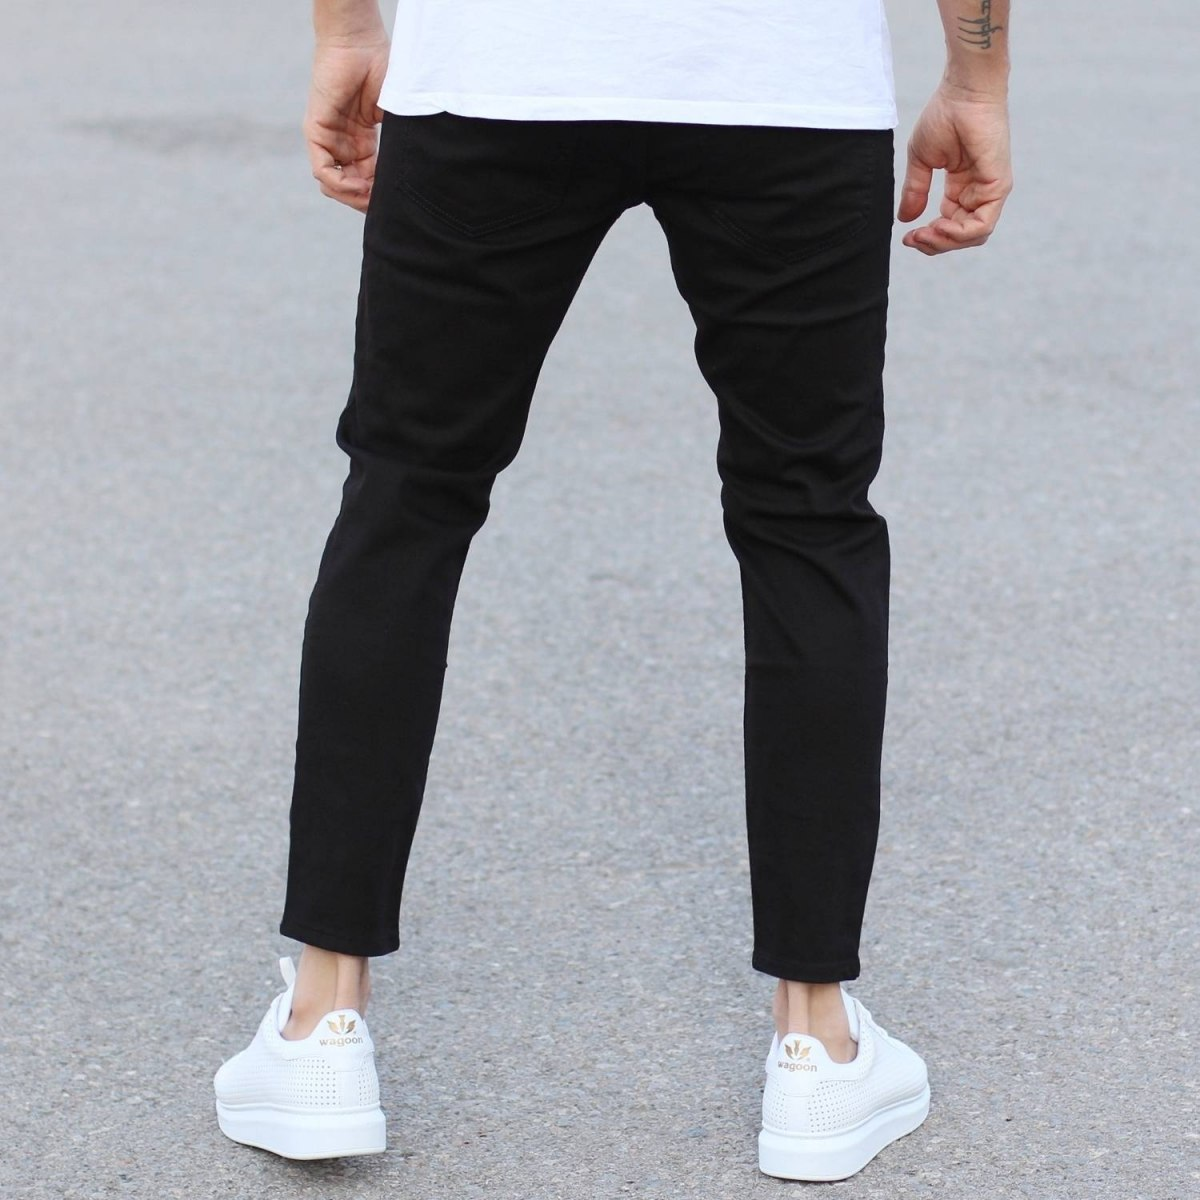 Black Loose-Fit Jeans With Knee-Holes Mv Premium Brand - 3